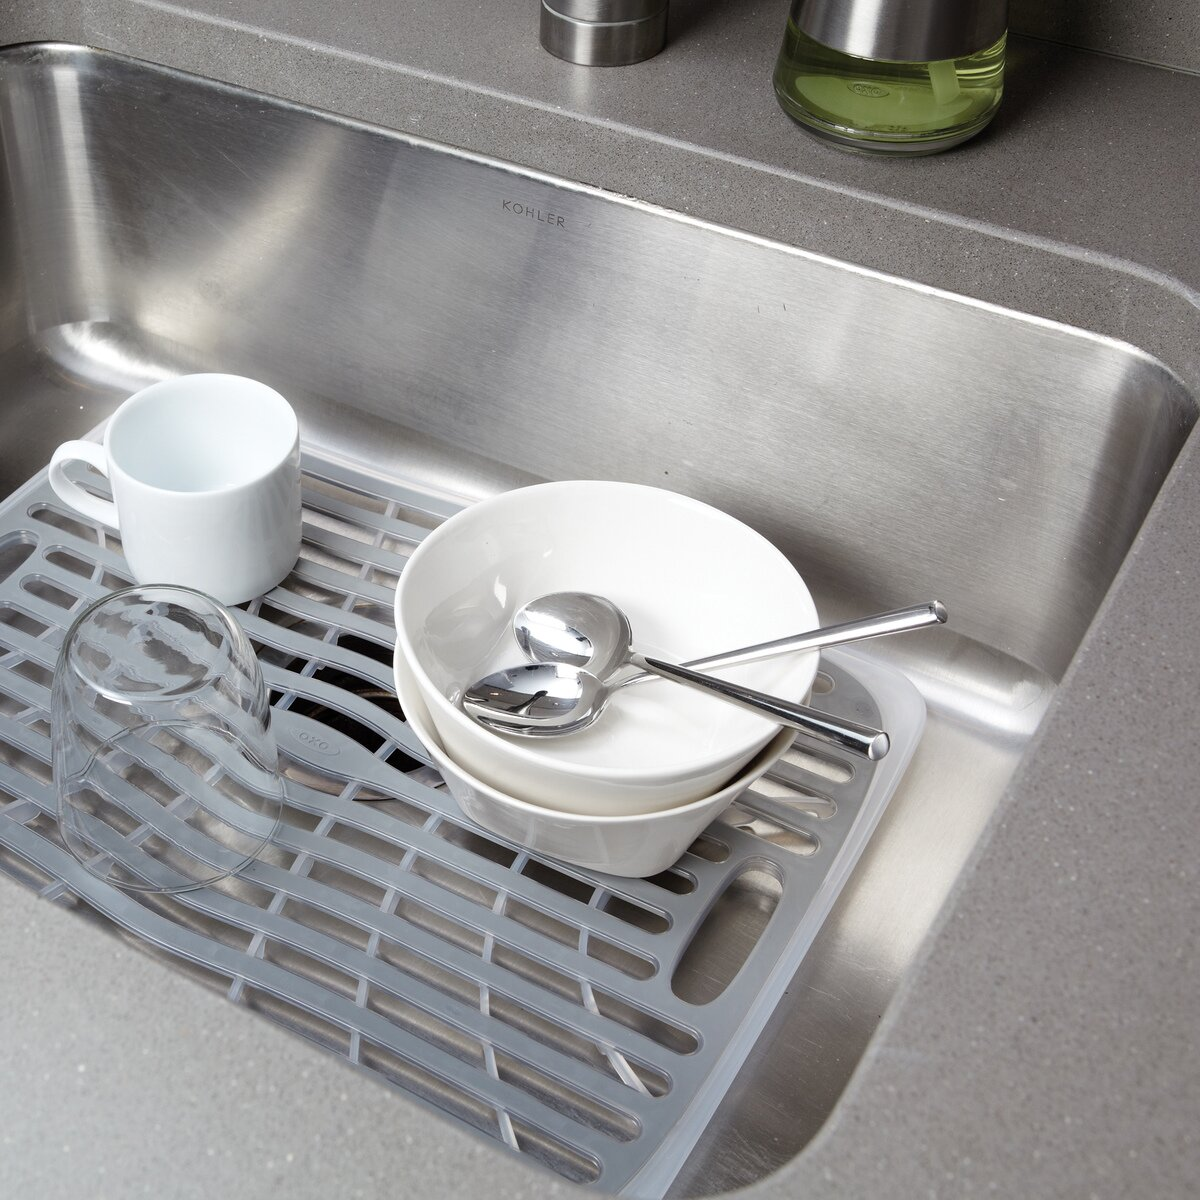 OXO Good Grips Sink Mat & Reviews